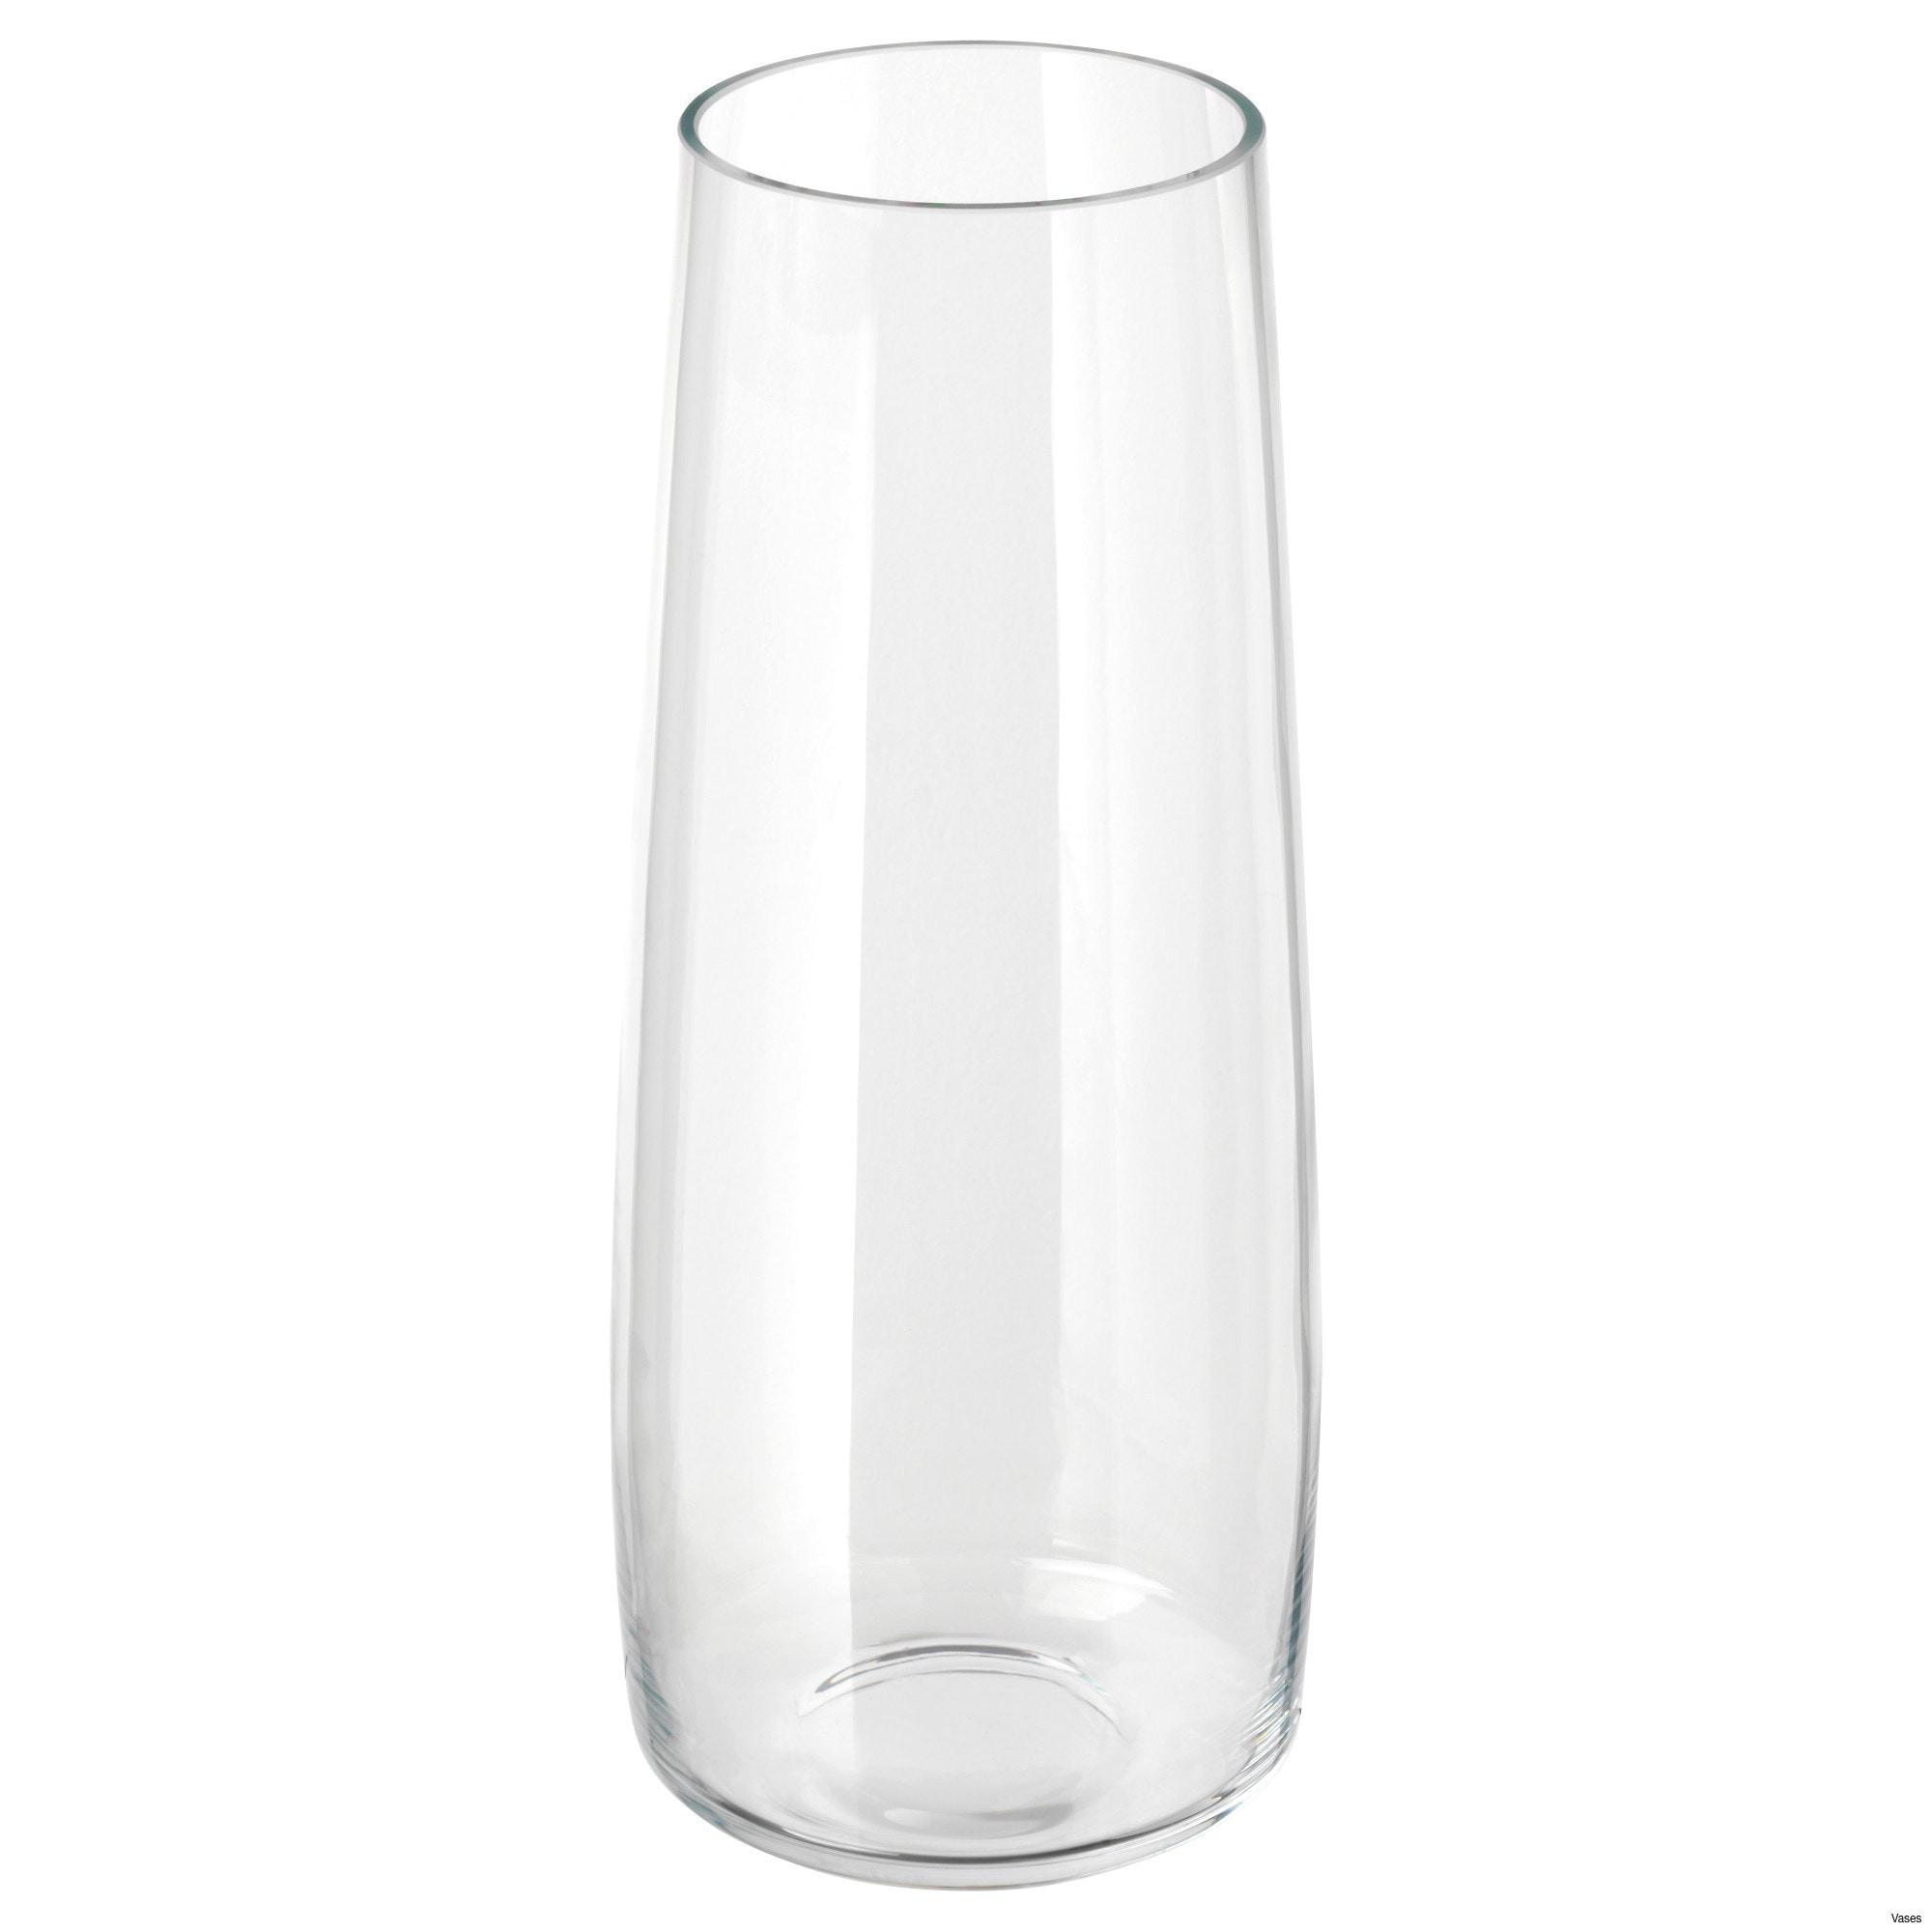 large cylinder vases cheap of large glass vases gallery living room glass vases fresh clear vase with large glass vases pictures clear glass planters fresh clear glass vases of large glass vases gallery